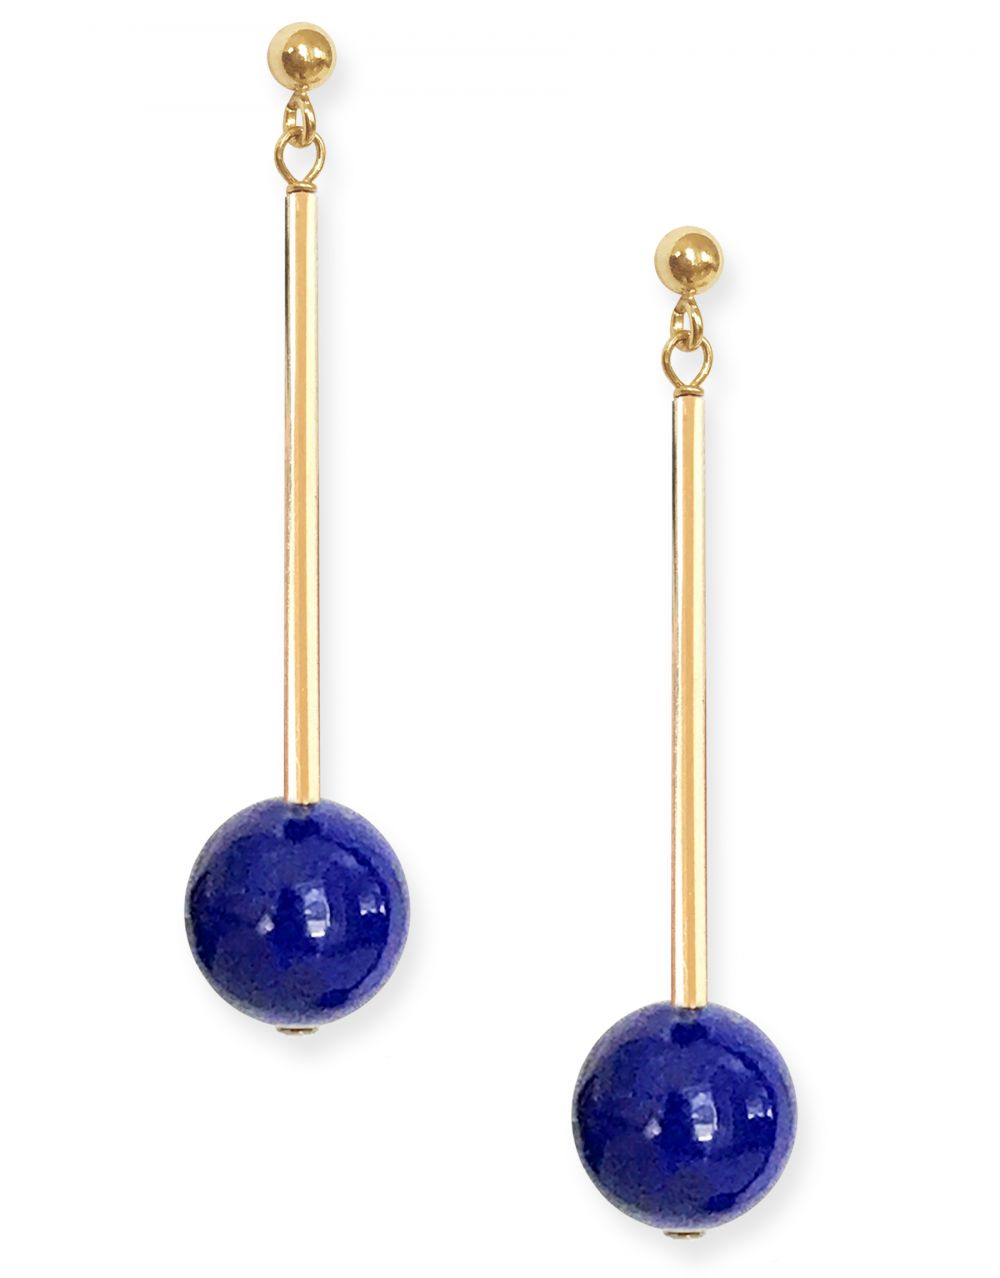 Umbra Earrings<br /><i><small>14K Yellow Gold with Lapis Lazuli</small></i><br /> - Eddera